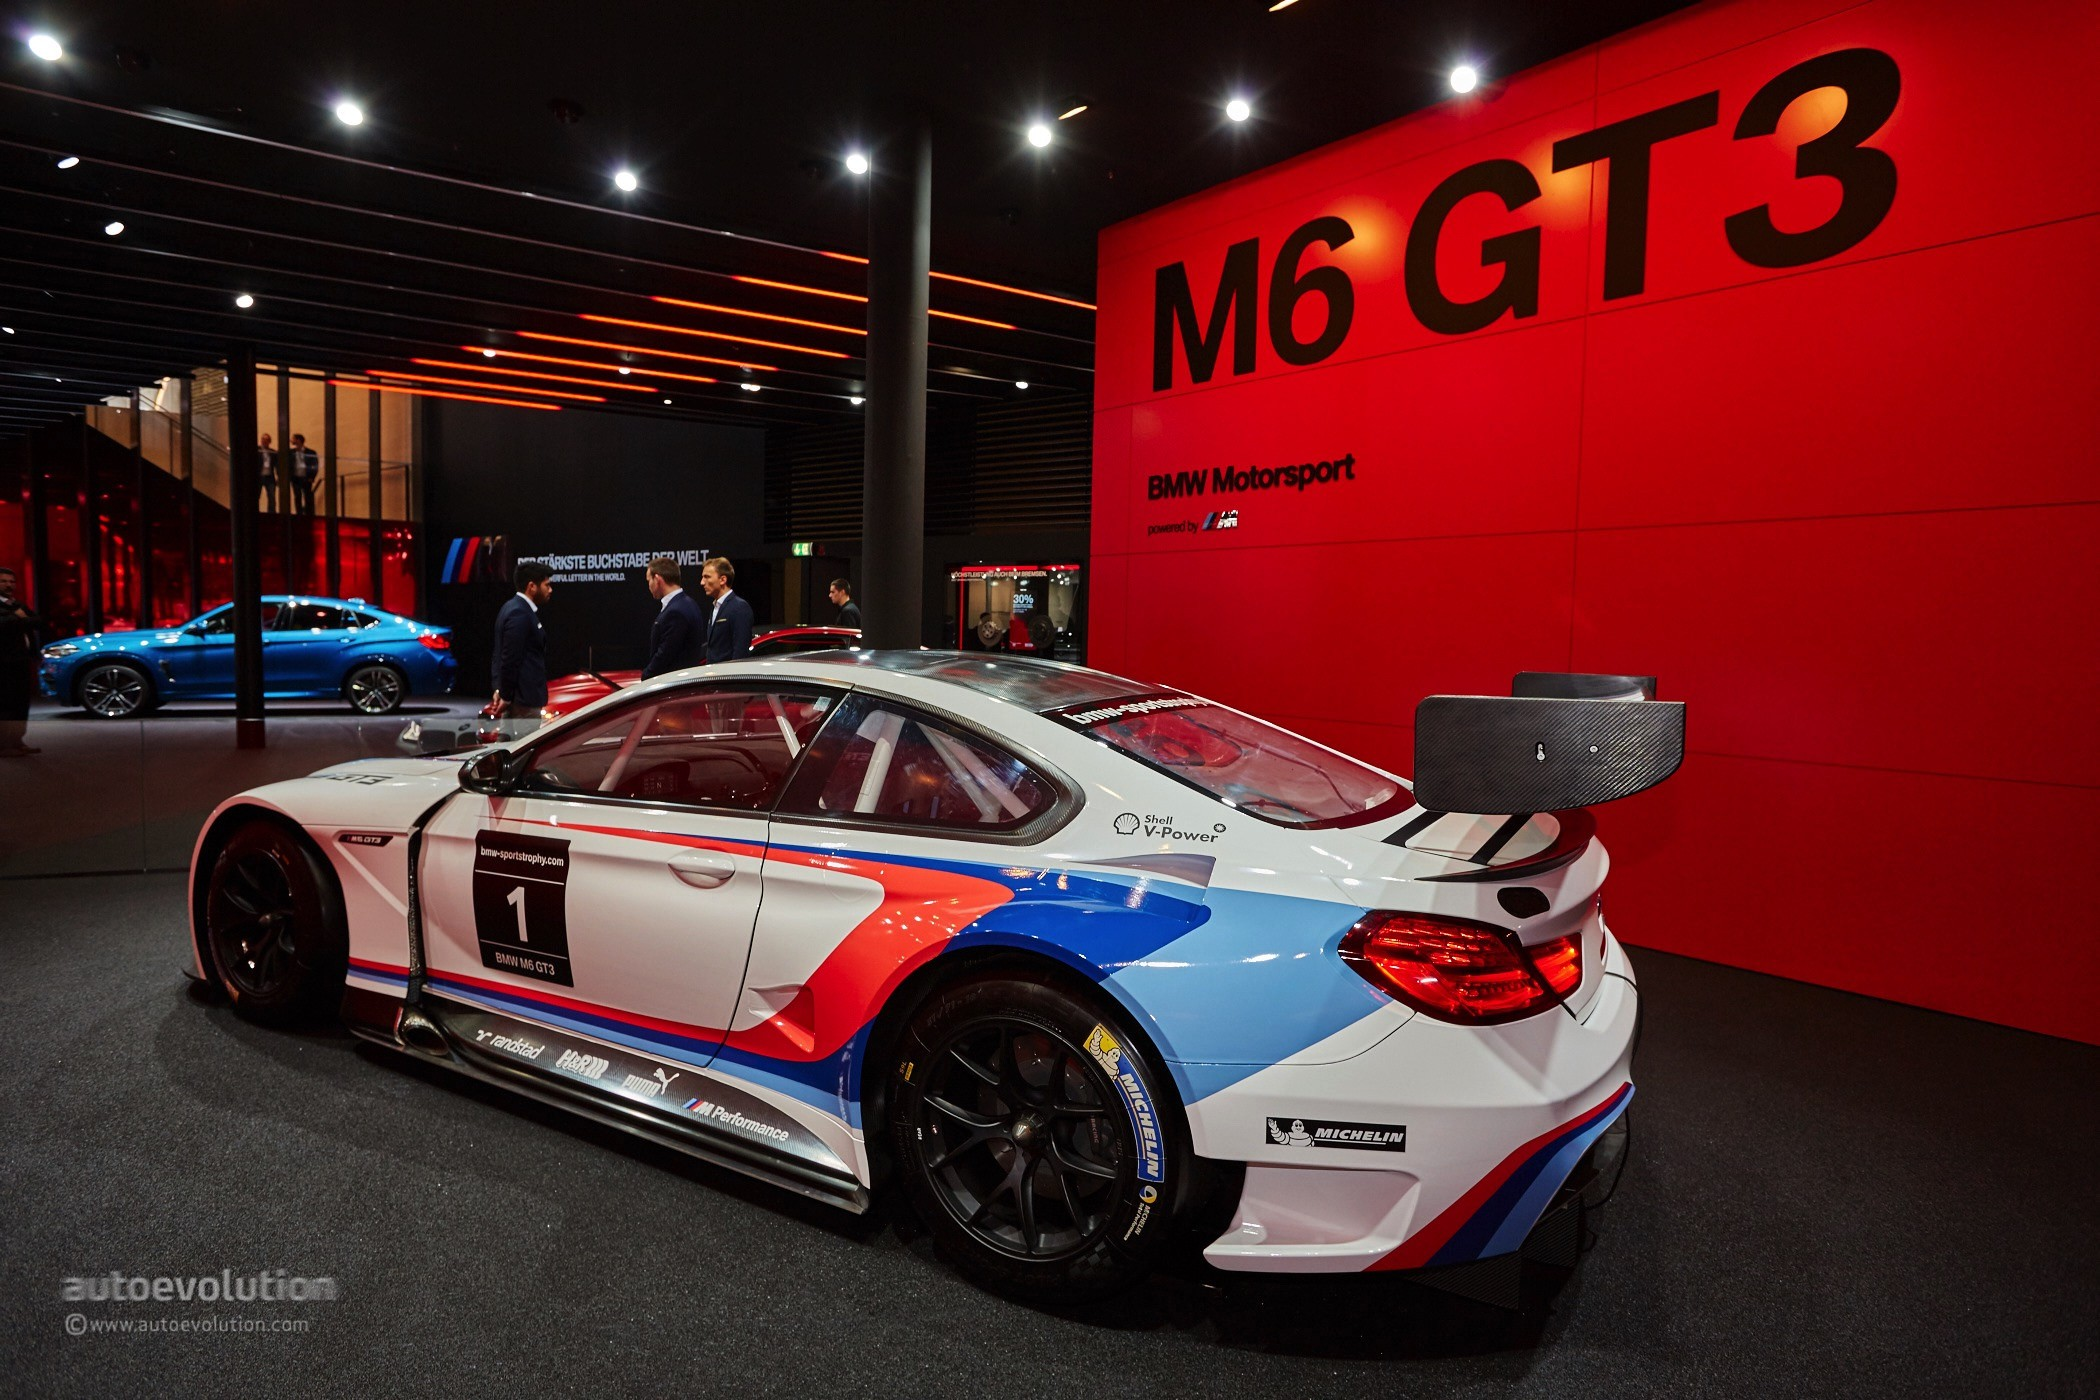 2016 Bmw M6 Gt3 Is The Definition Of Eye Candy At